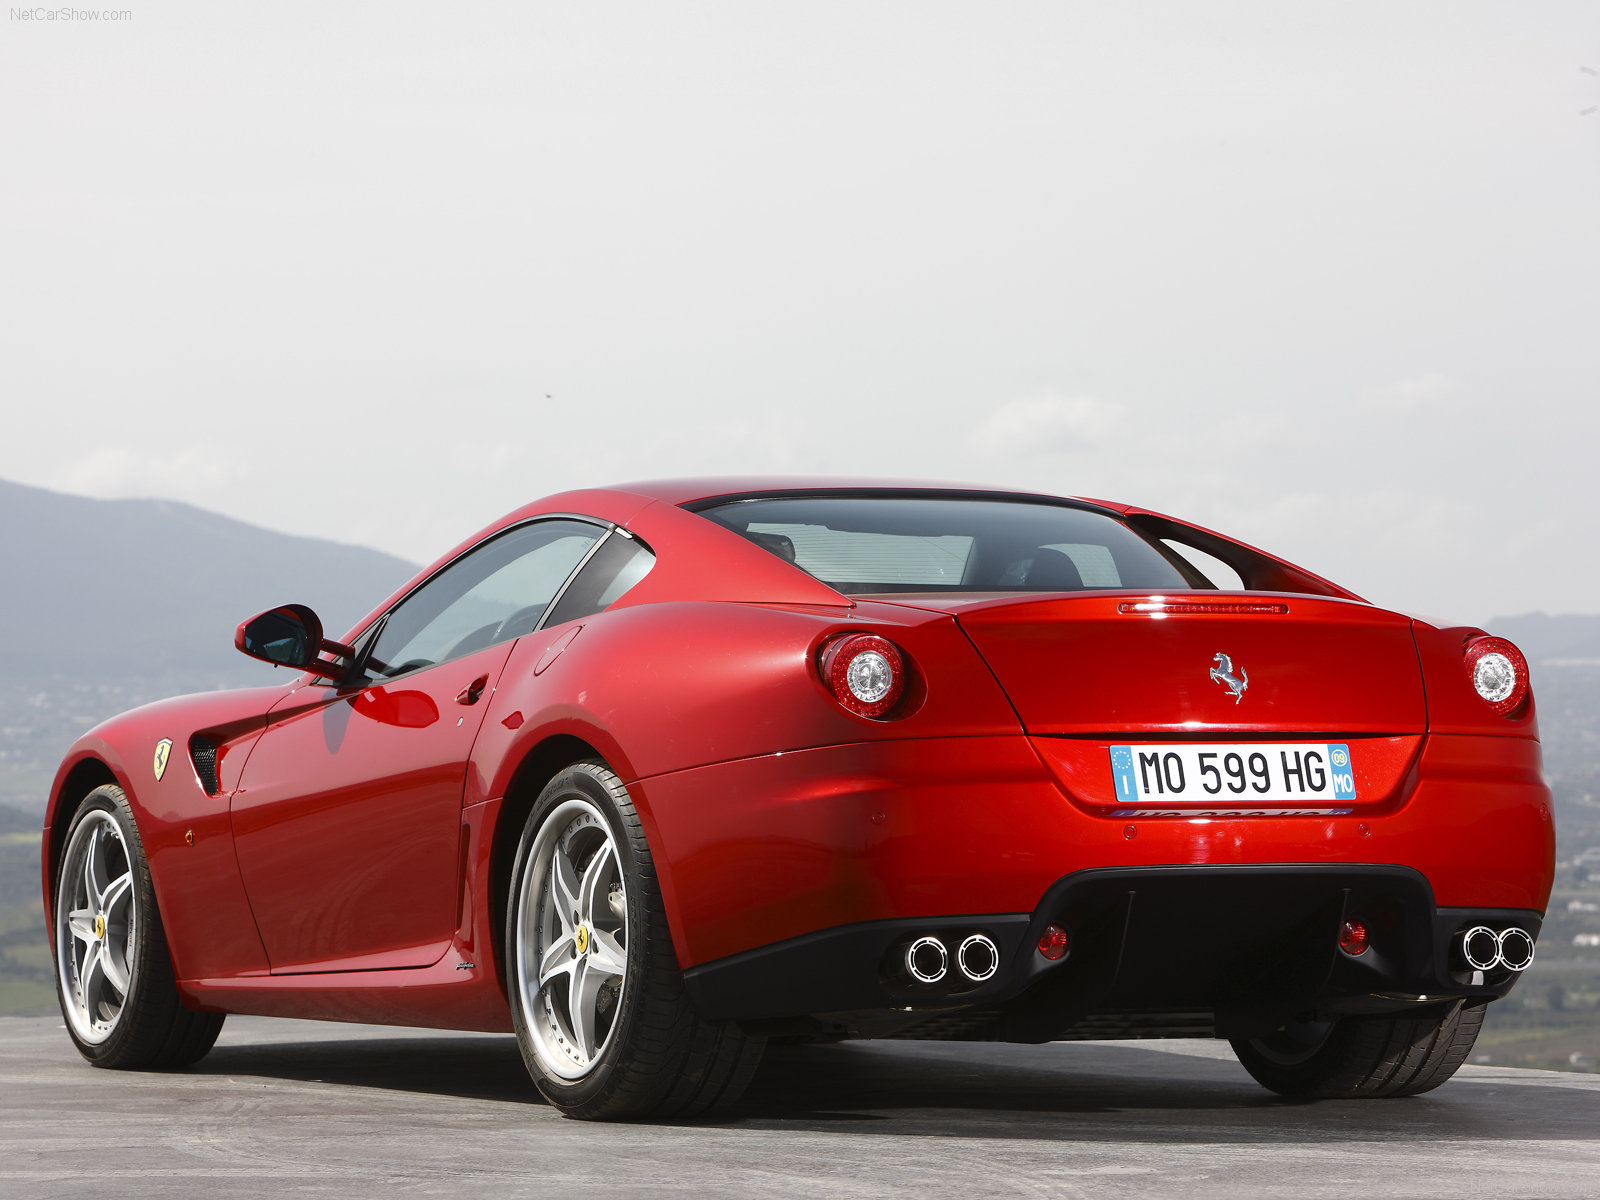 Ferrari 599 GTB Fiorano HGTE picture  65247  Ferrari photo gallery